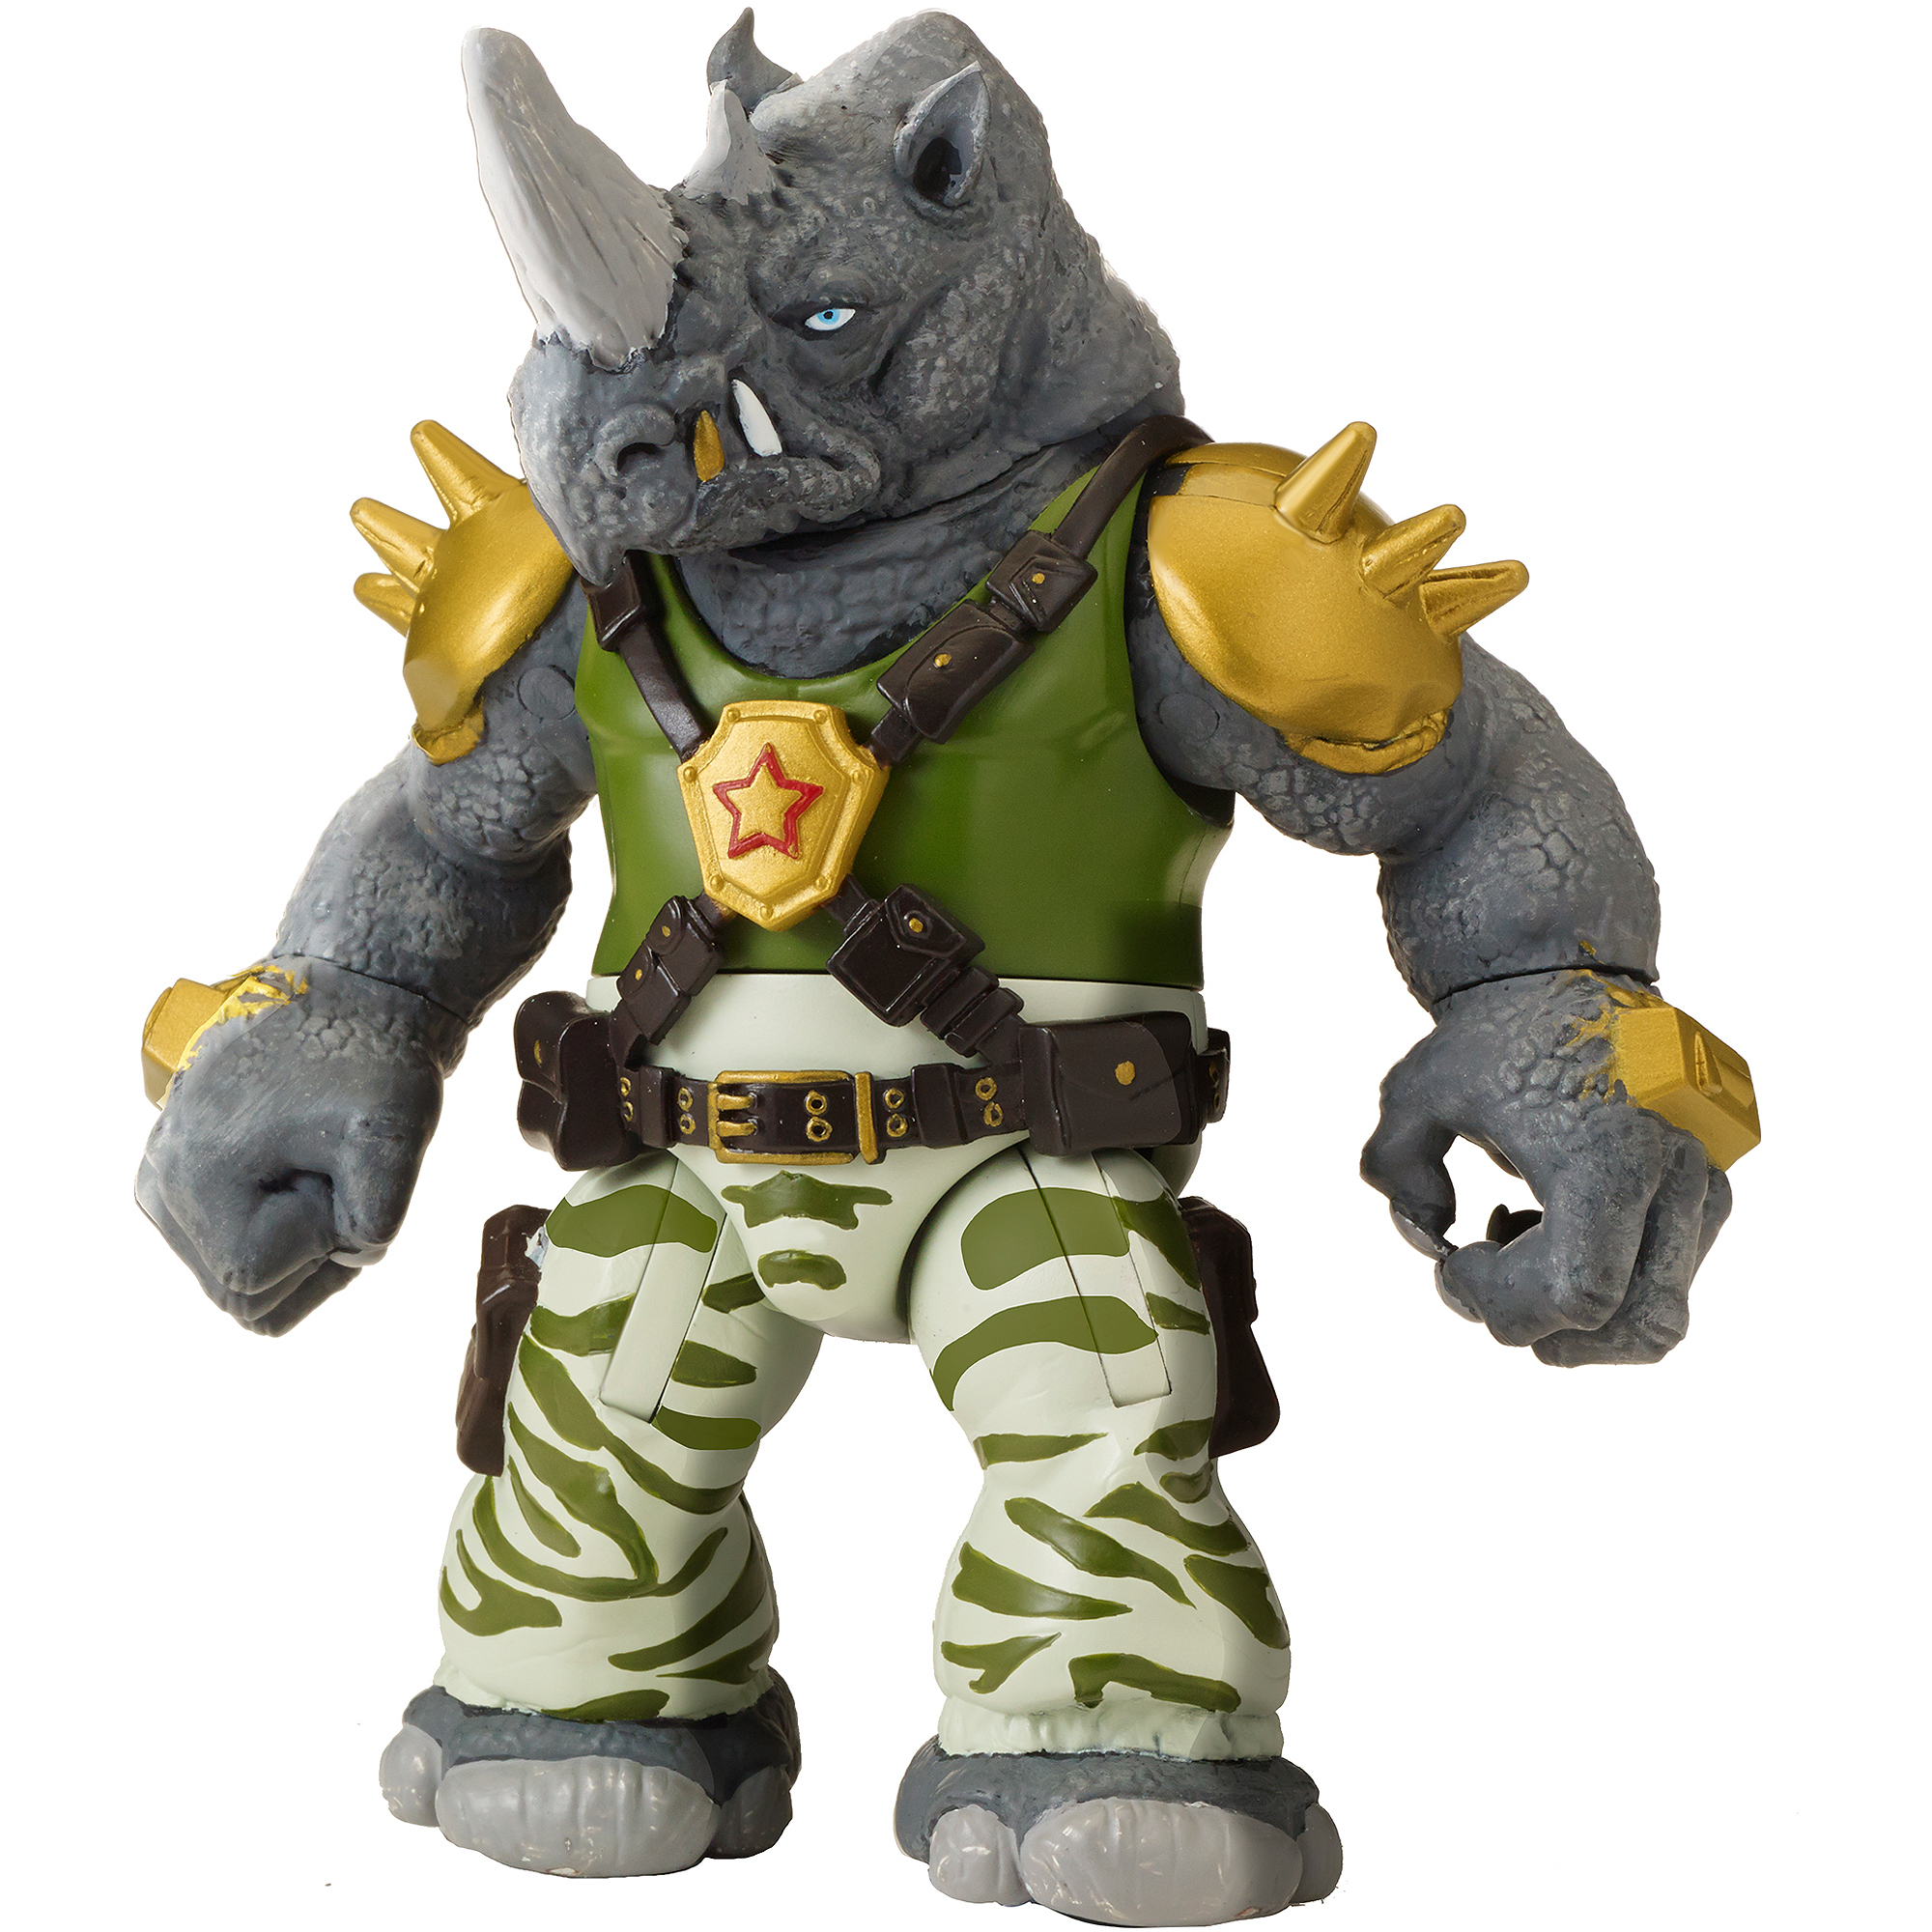 TMNT Rocksteady Action Figure